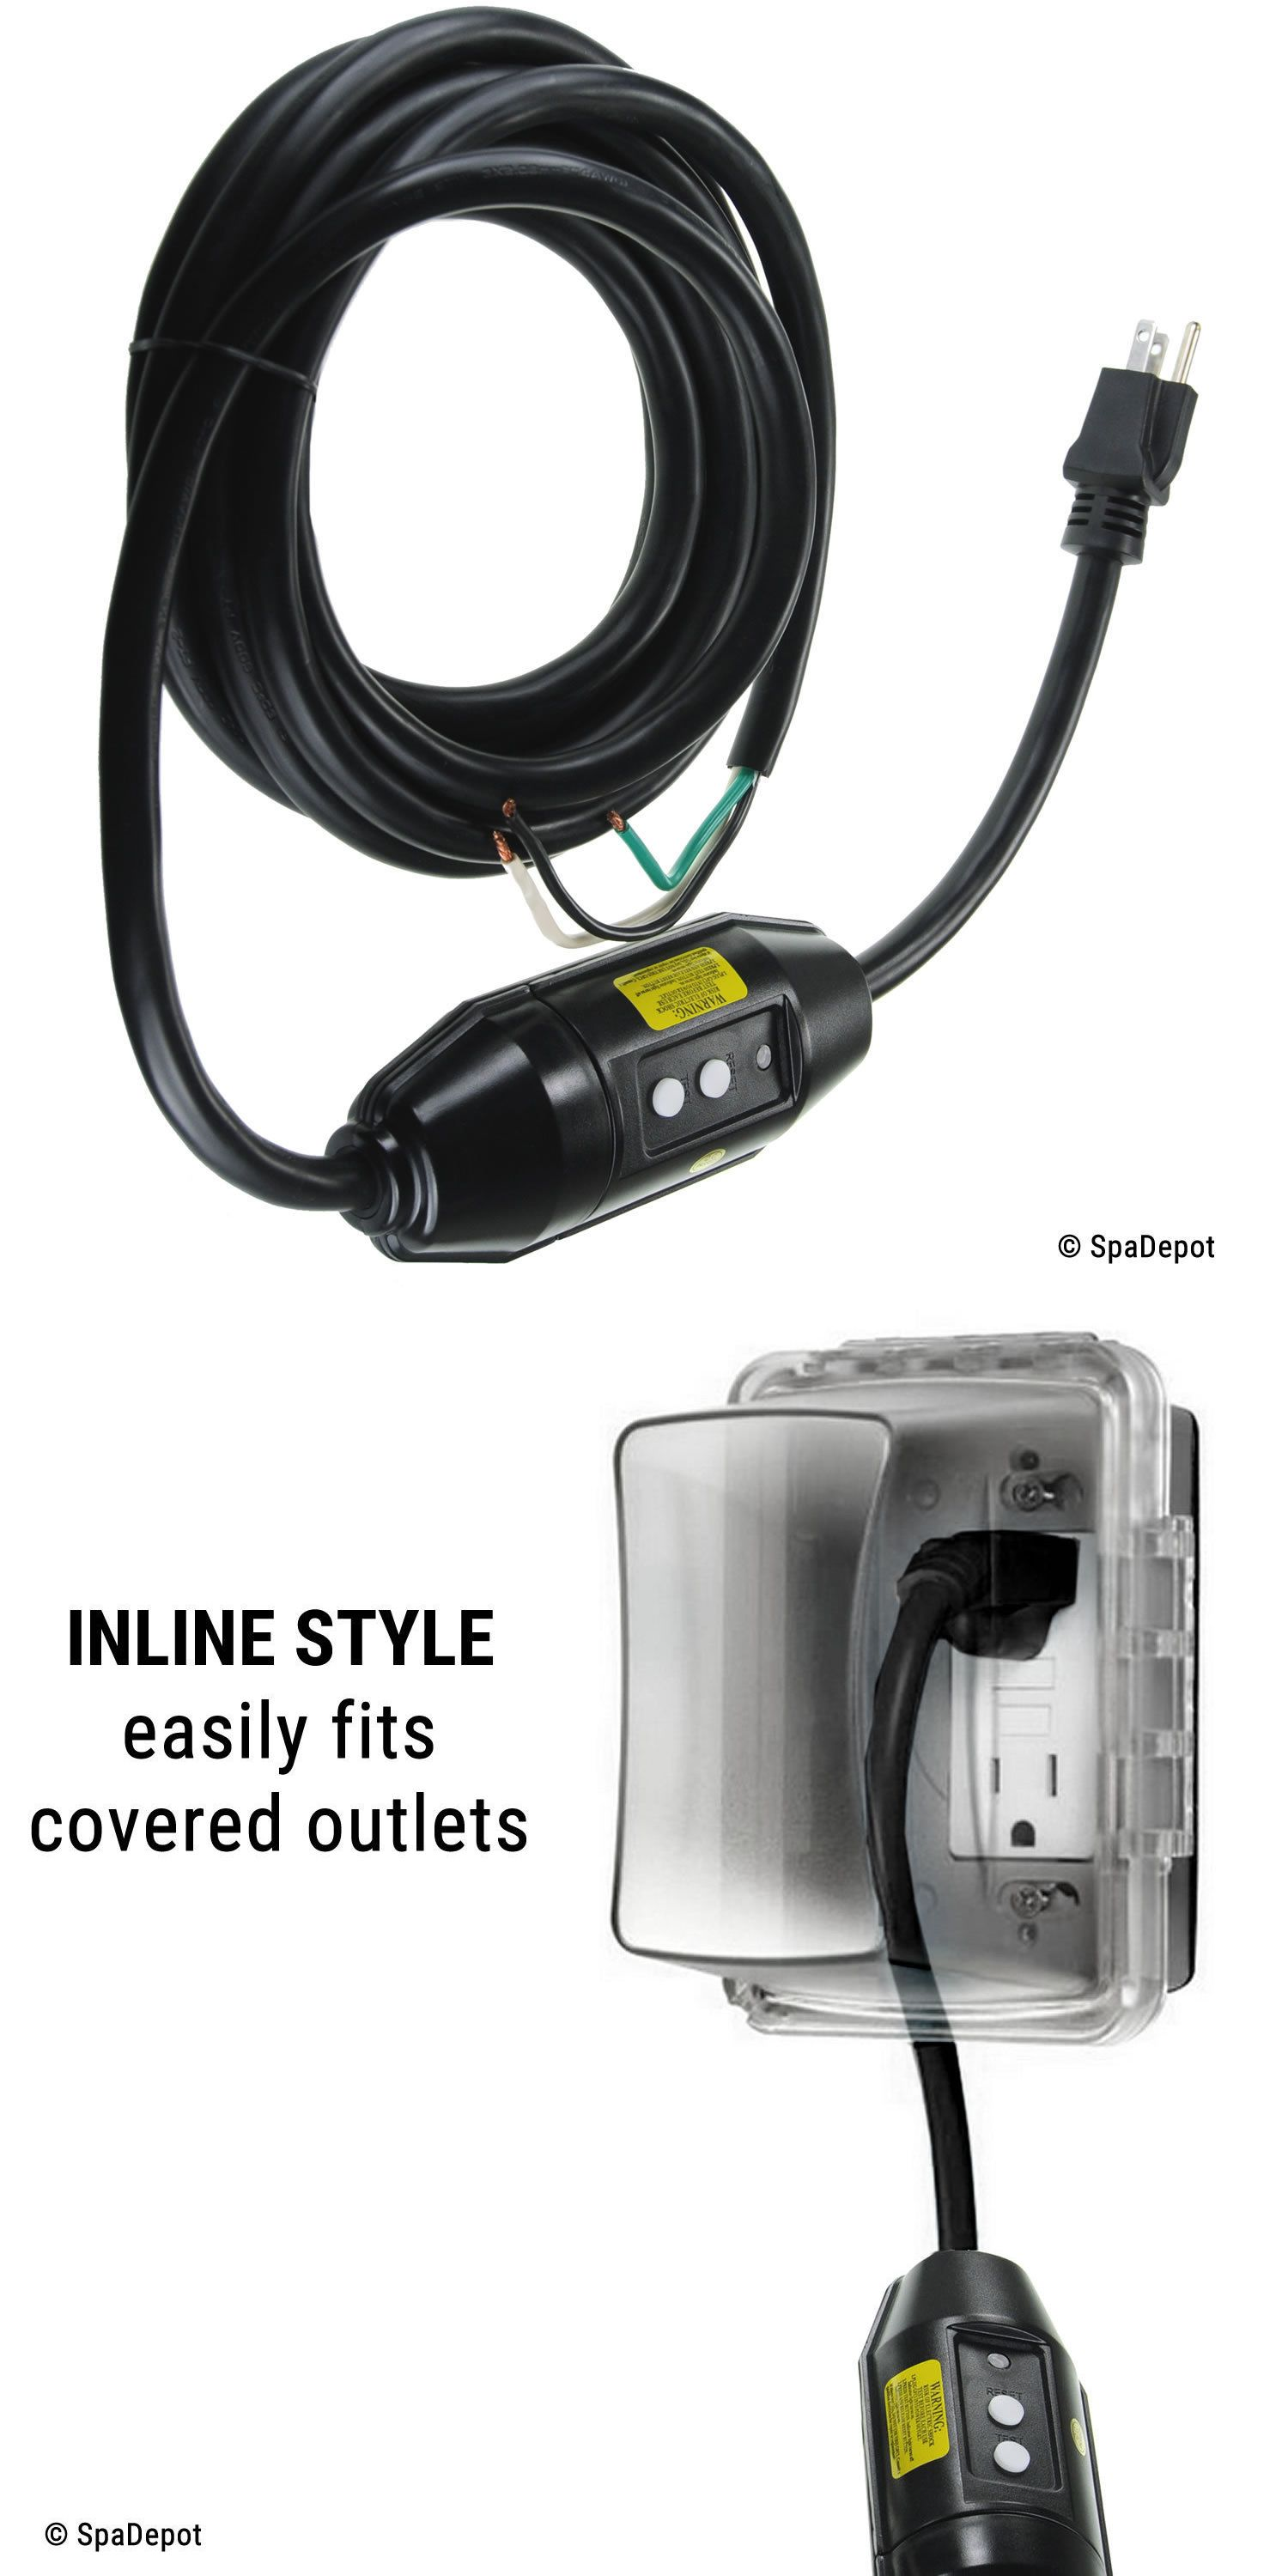 Hot Tub Power Cord 120v 15a W In Line Gfci For Plug N Play Spas 16 Length Spa Pool Gfci Outdoor Outlet